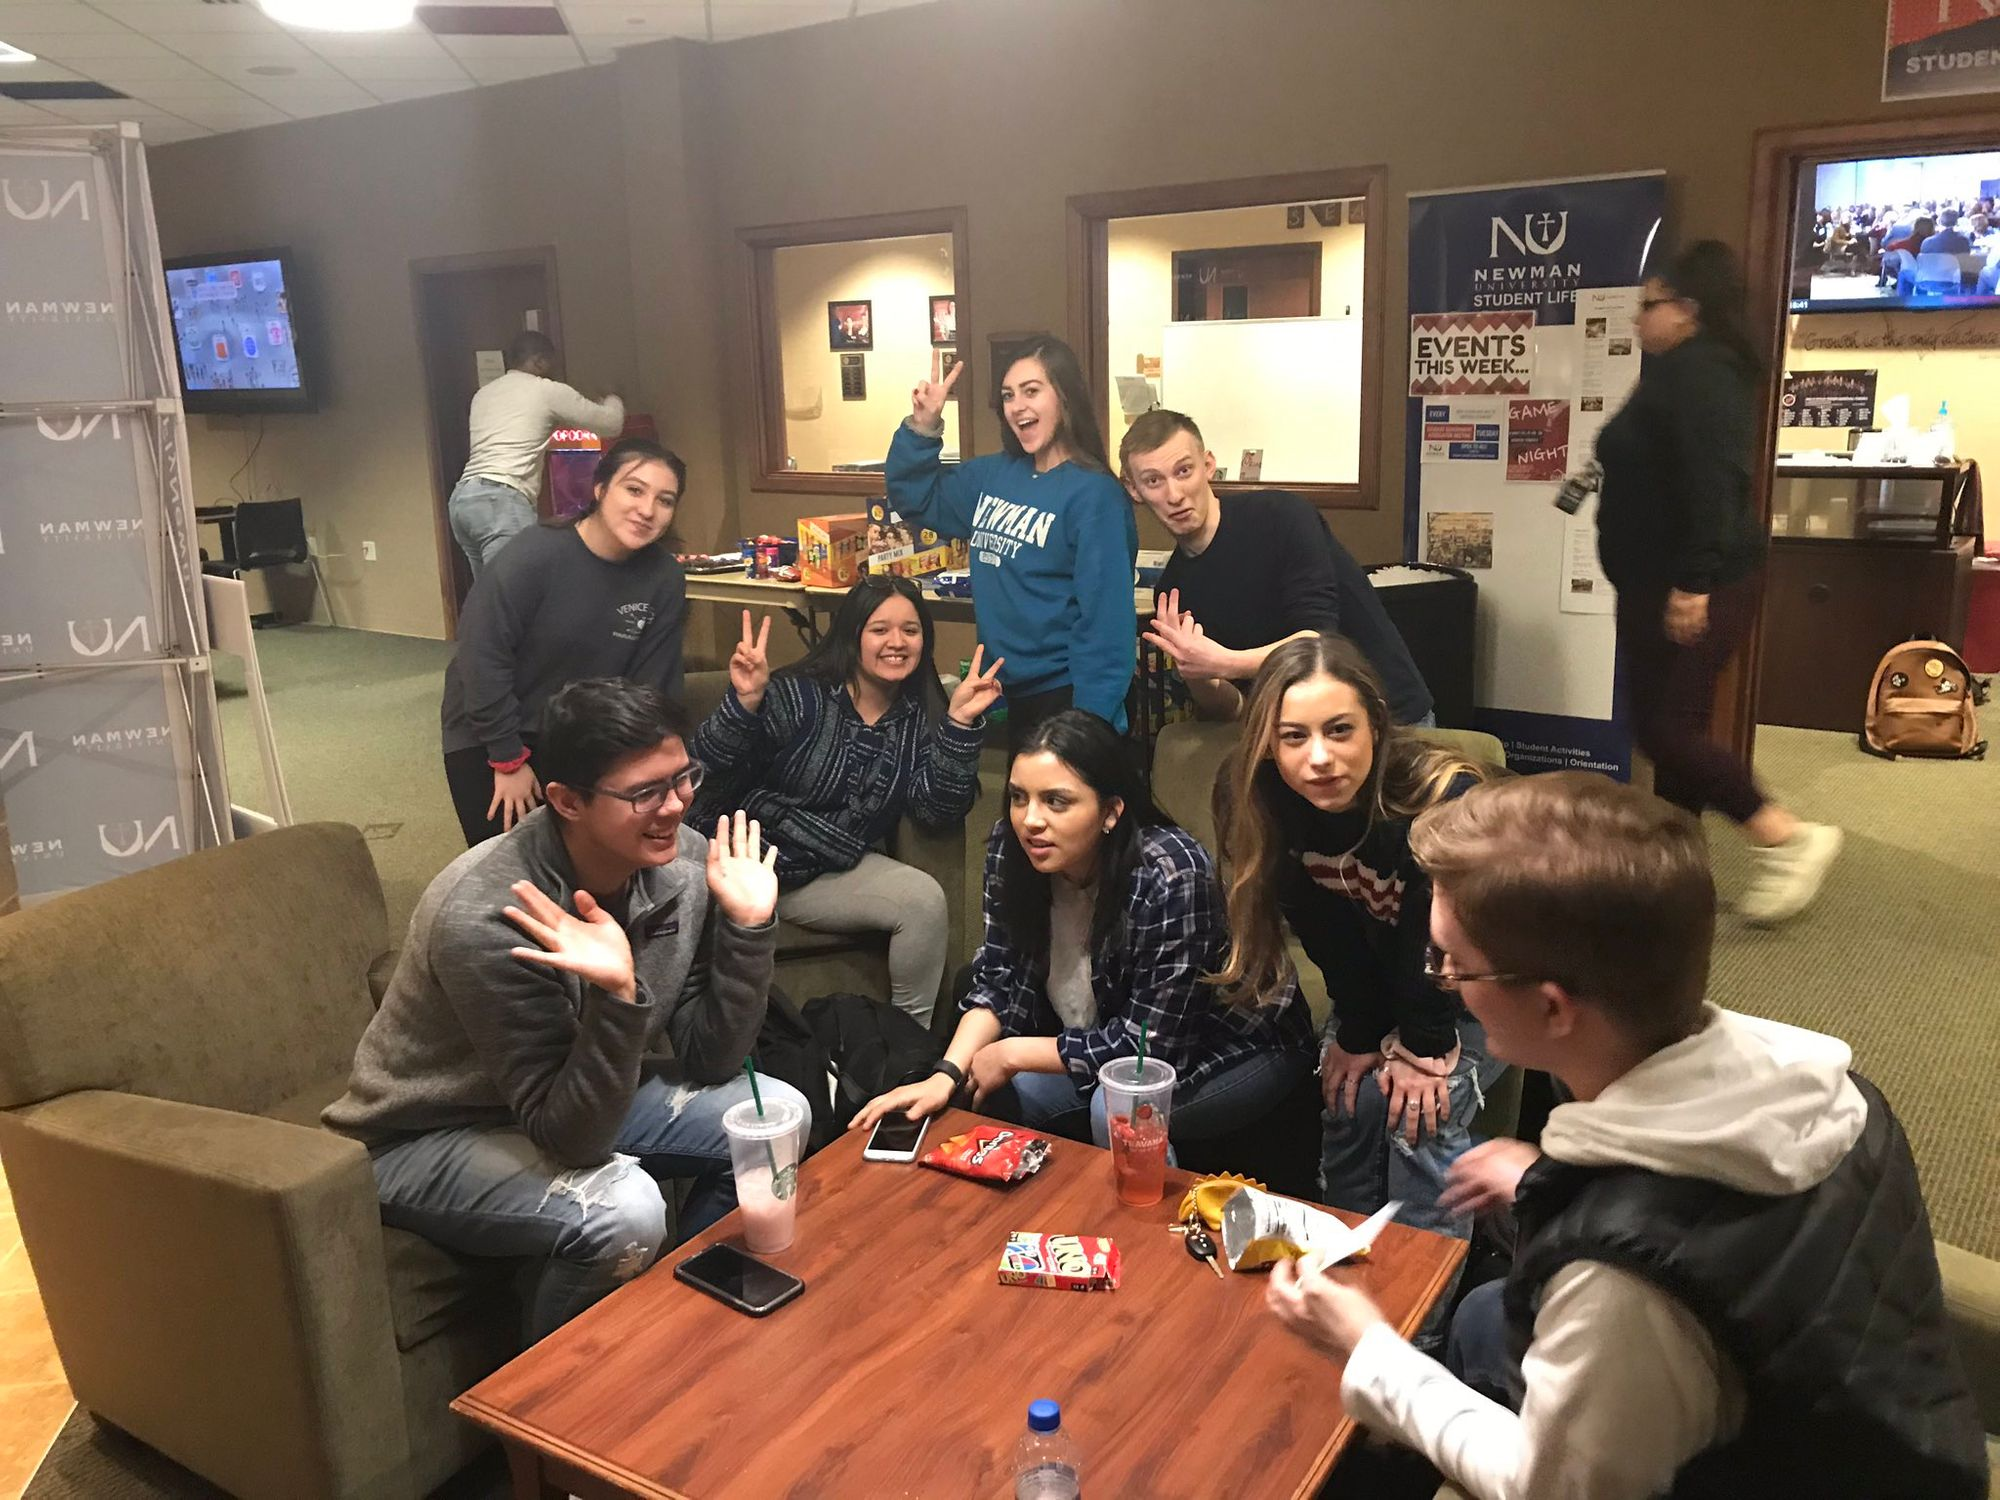 Accepted students gear up for game night